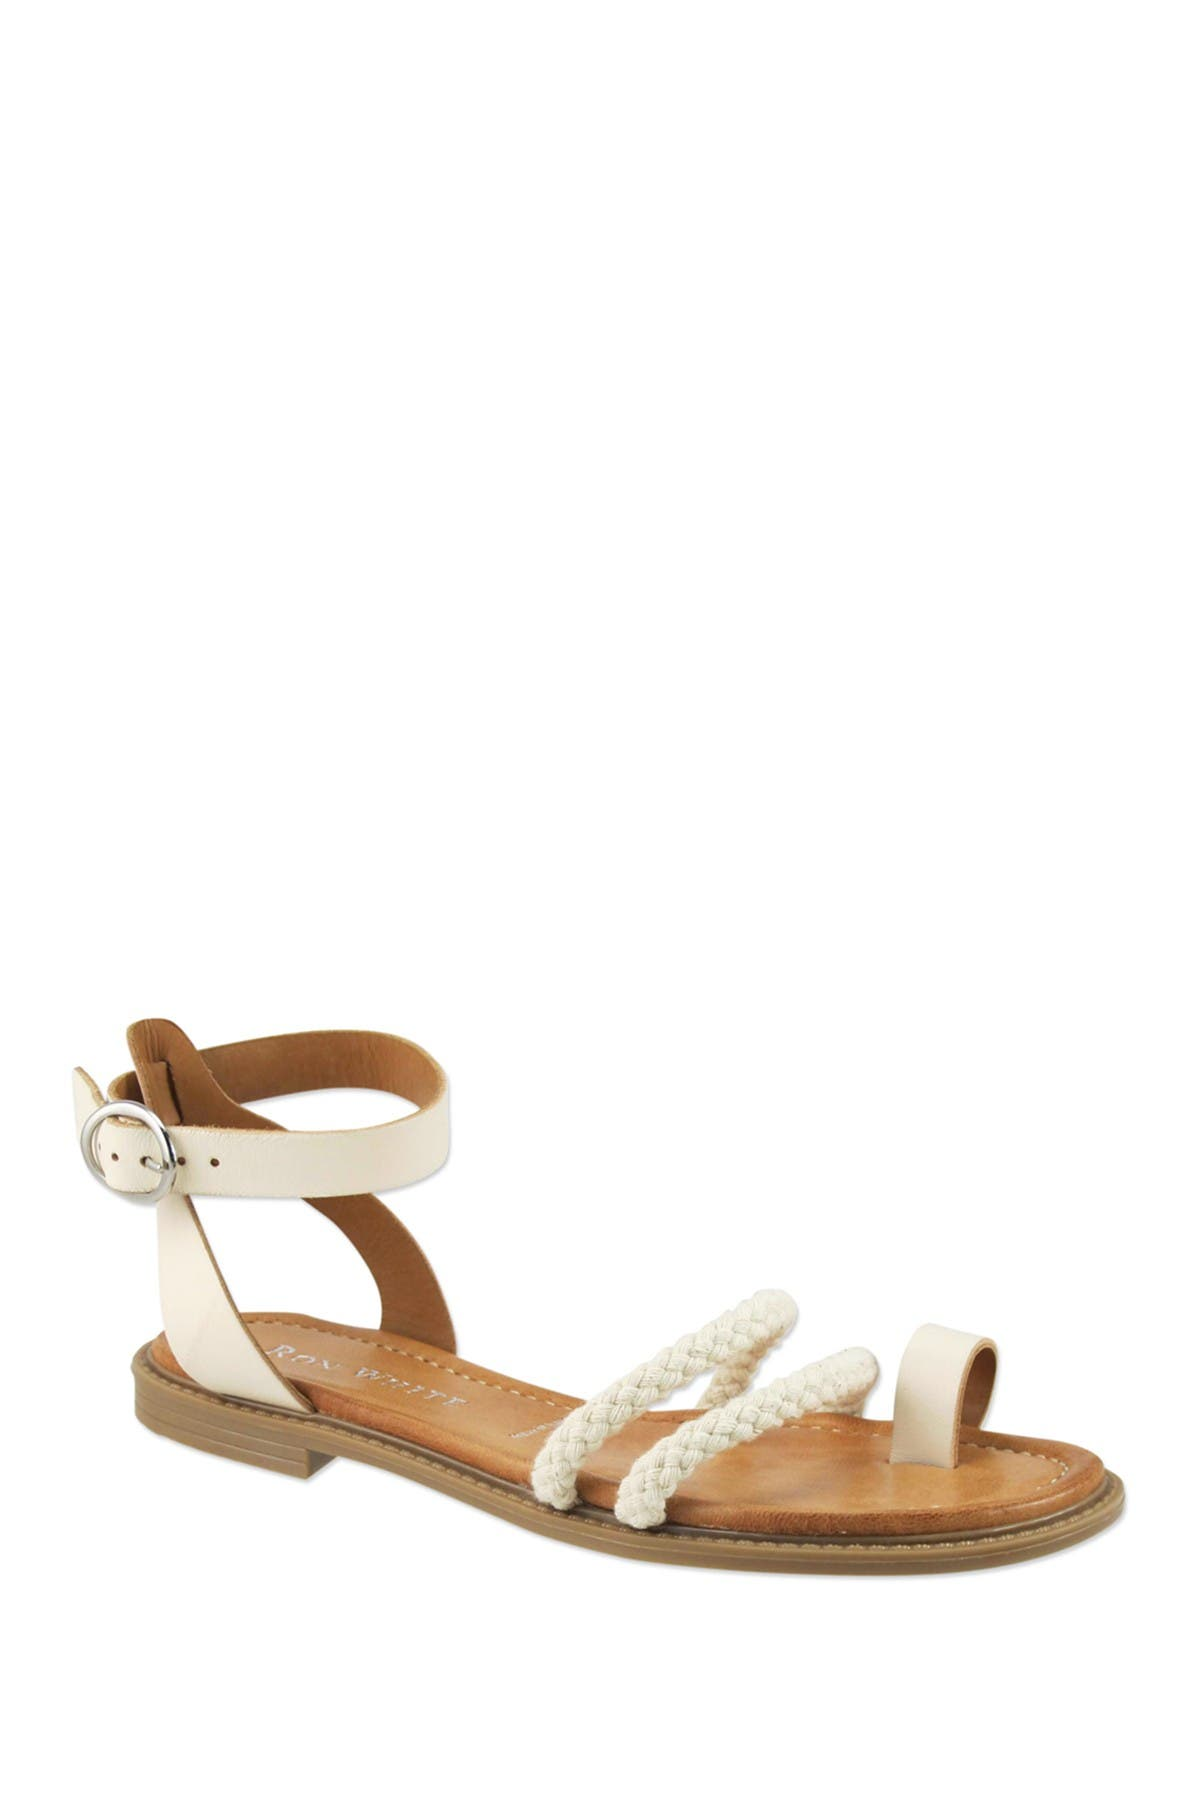 Image of RON WHITE Saralie Braided Toe Strap Sandal